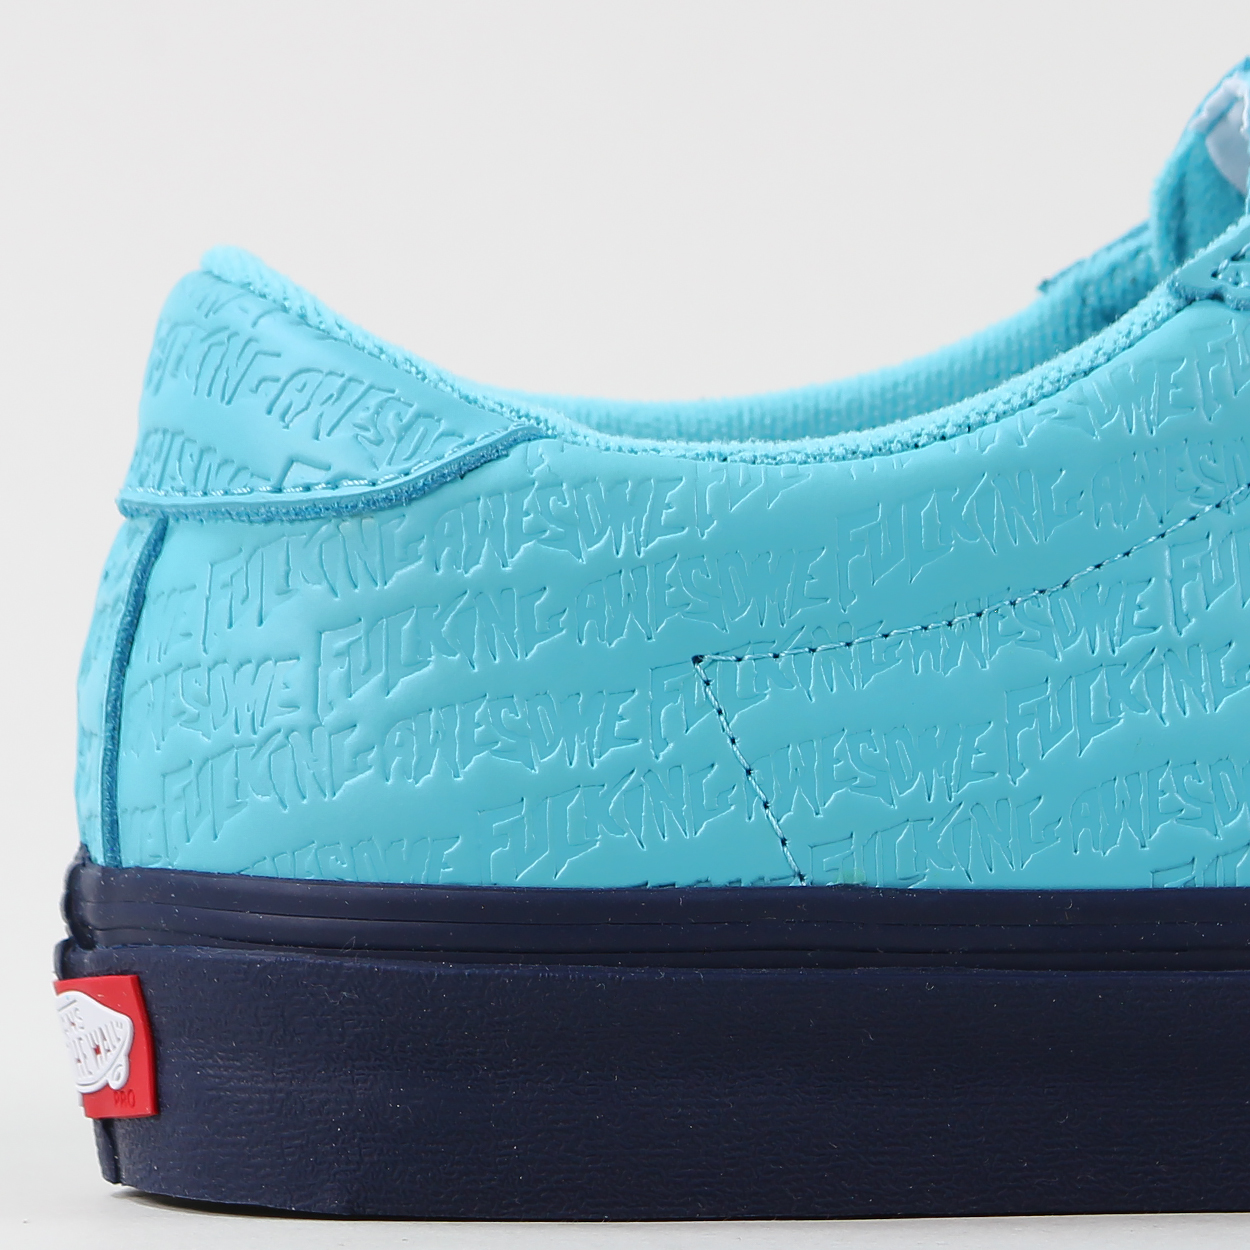 4c7146de3d9 A colaboration shoe between Vans and streetwear high-risers Fucking Awesome.  Features a classic gum waffle tread and an original design on the leather  ...